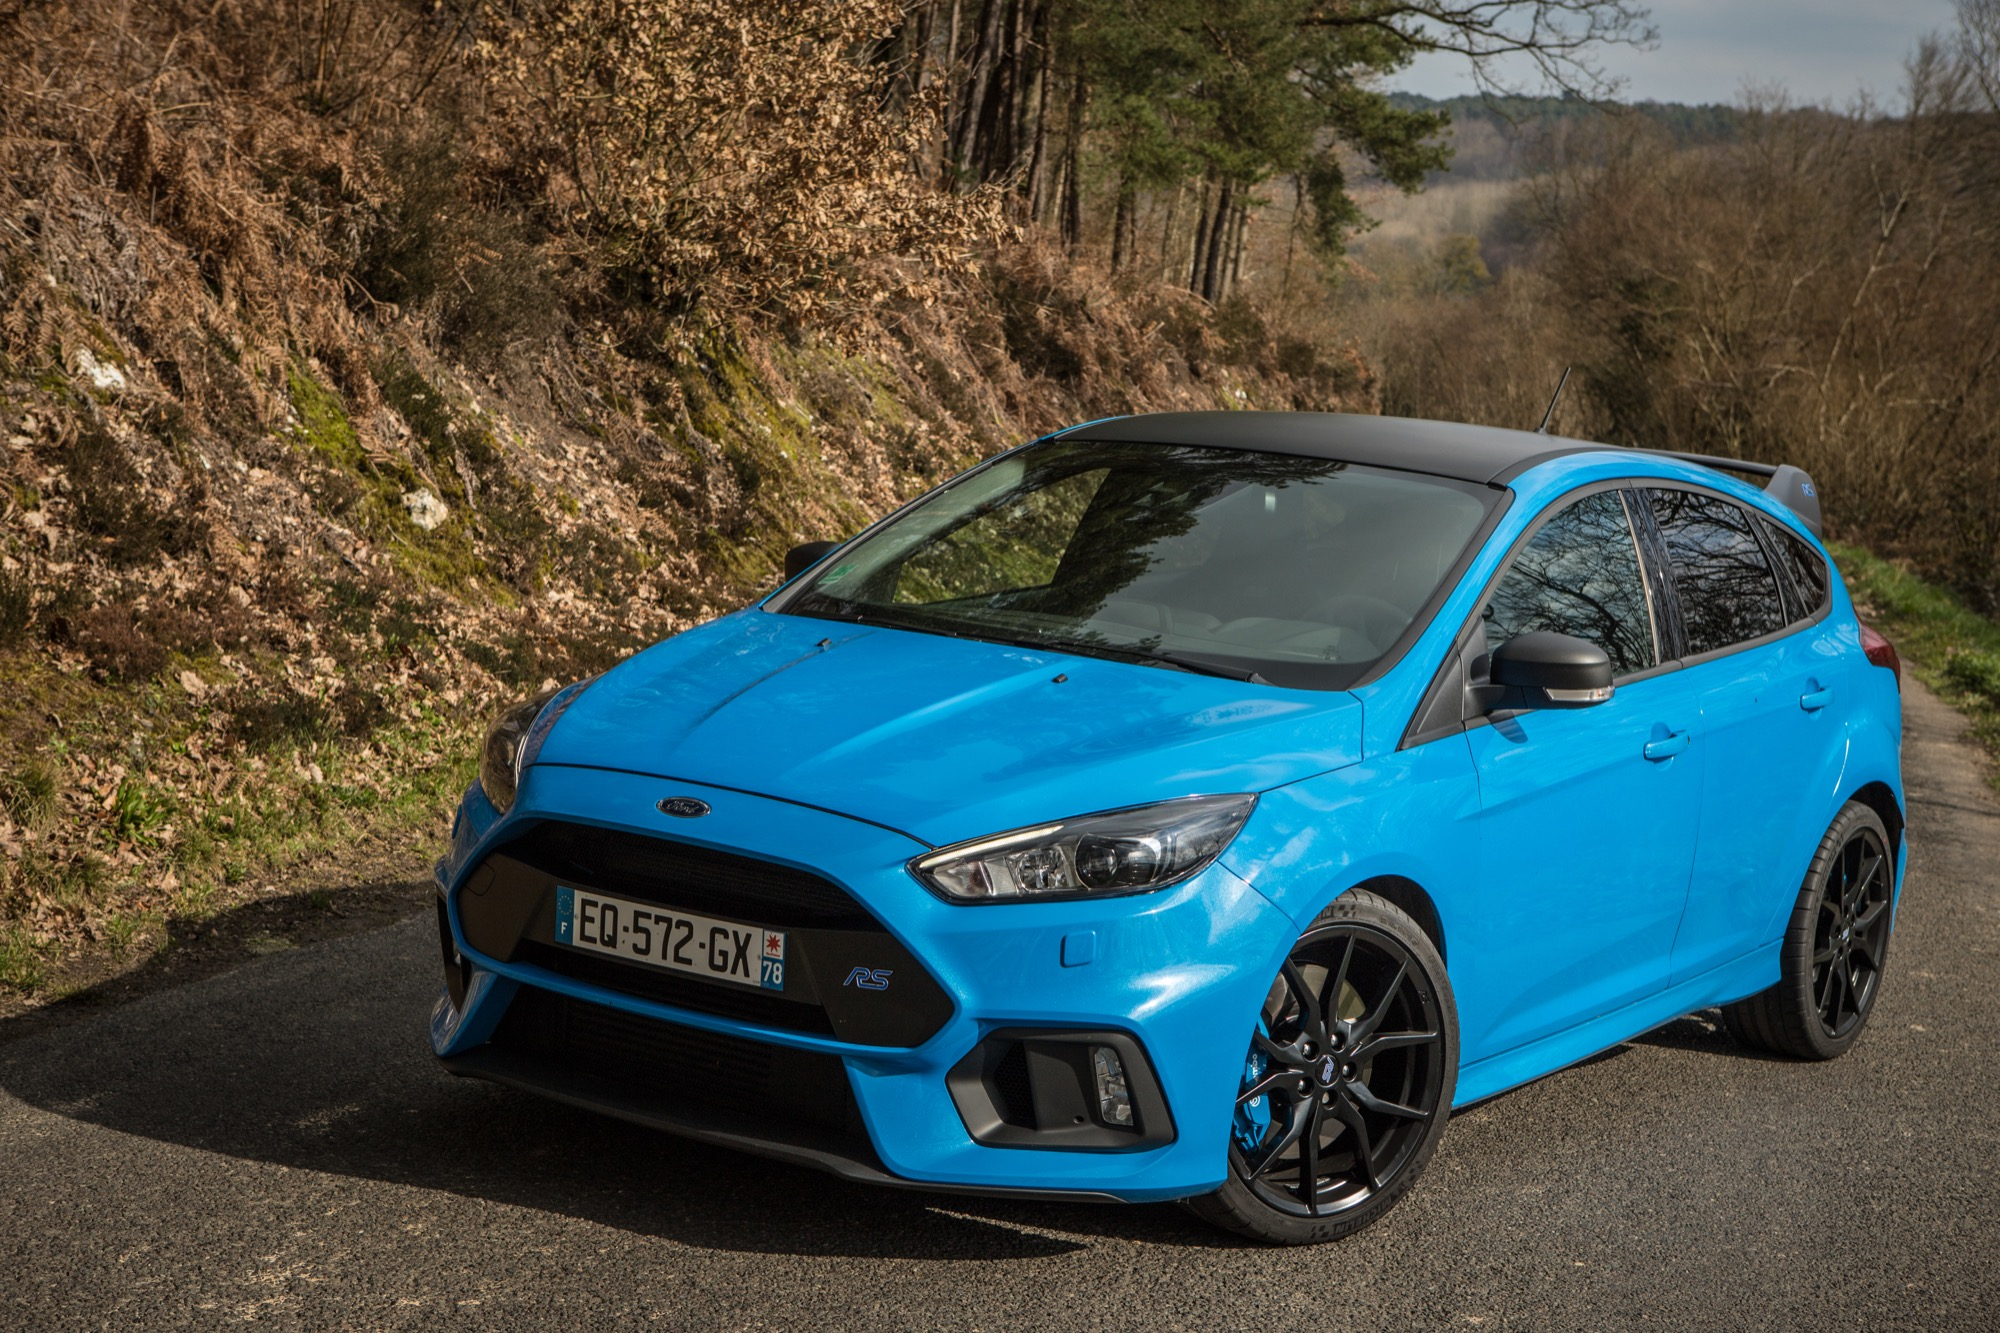 la ford focus rs pack performance l 39 essai un dernier galop d 39 adieu. Black Bedroom Furniture Sets. Home Design Ideas